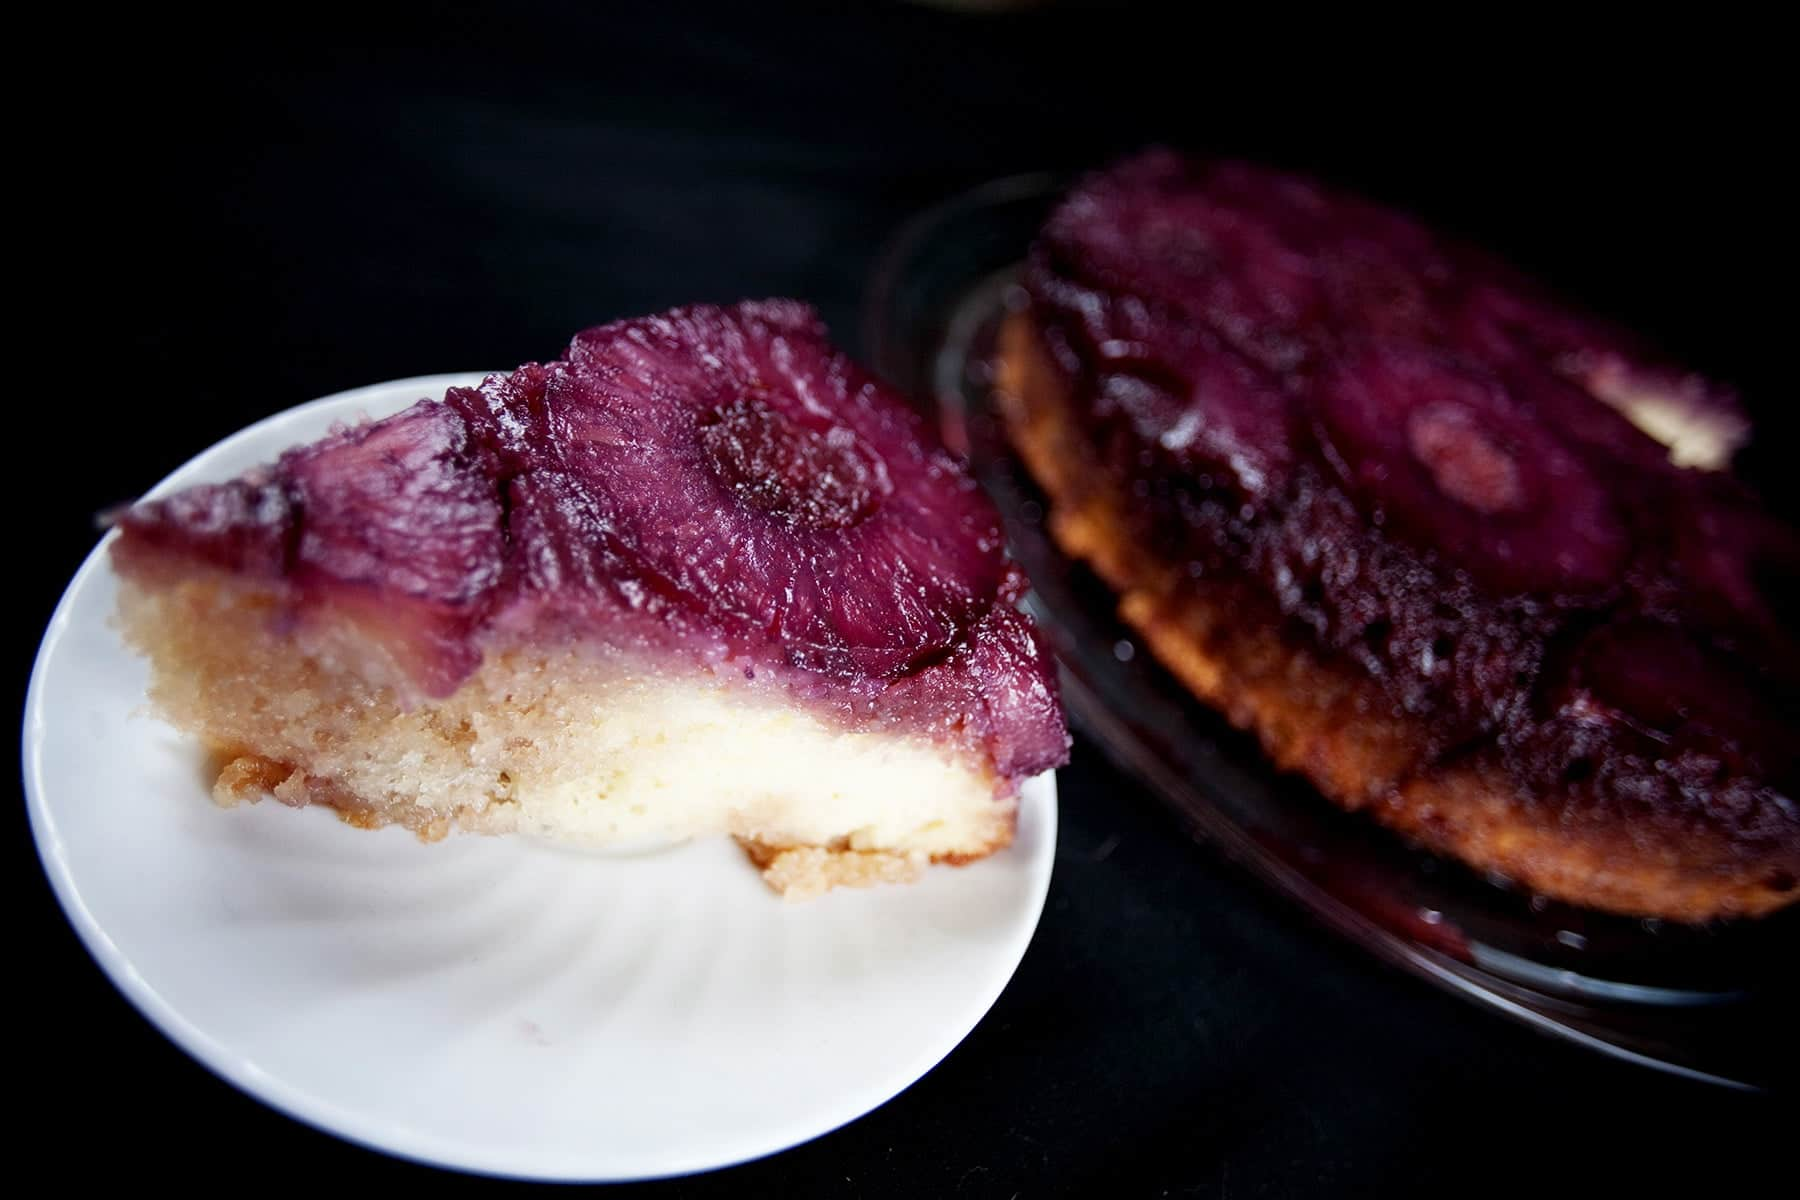 French Martini Upside Down Cake - A round pineapple upside down cake, with a VERY purple top! A slice has been cut out and is on a plate next to the main cake.